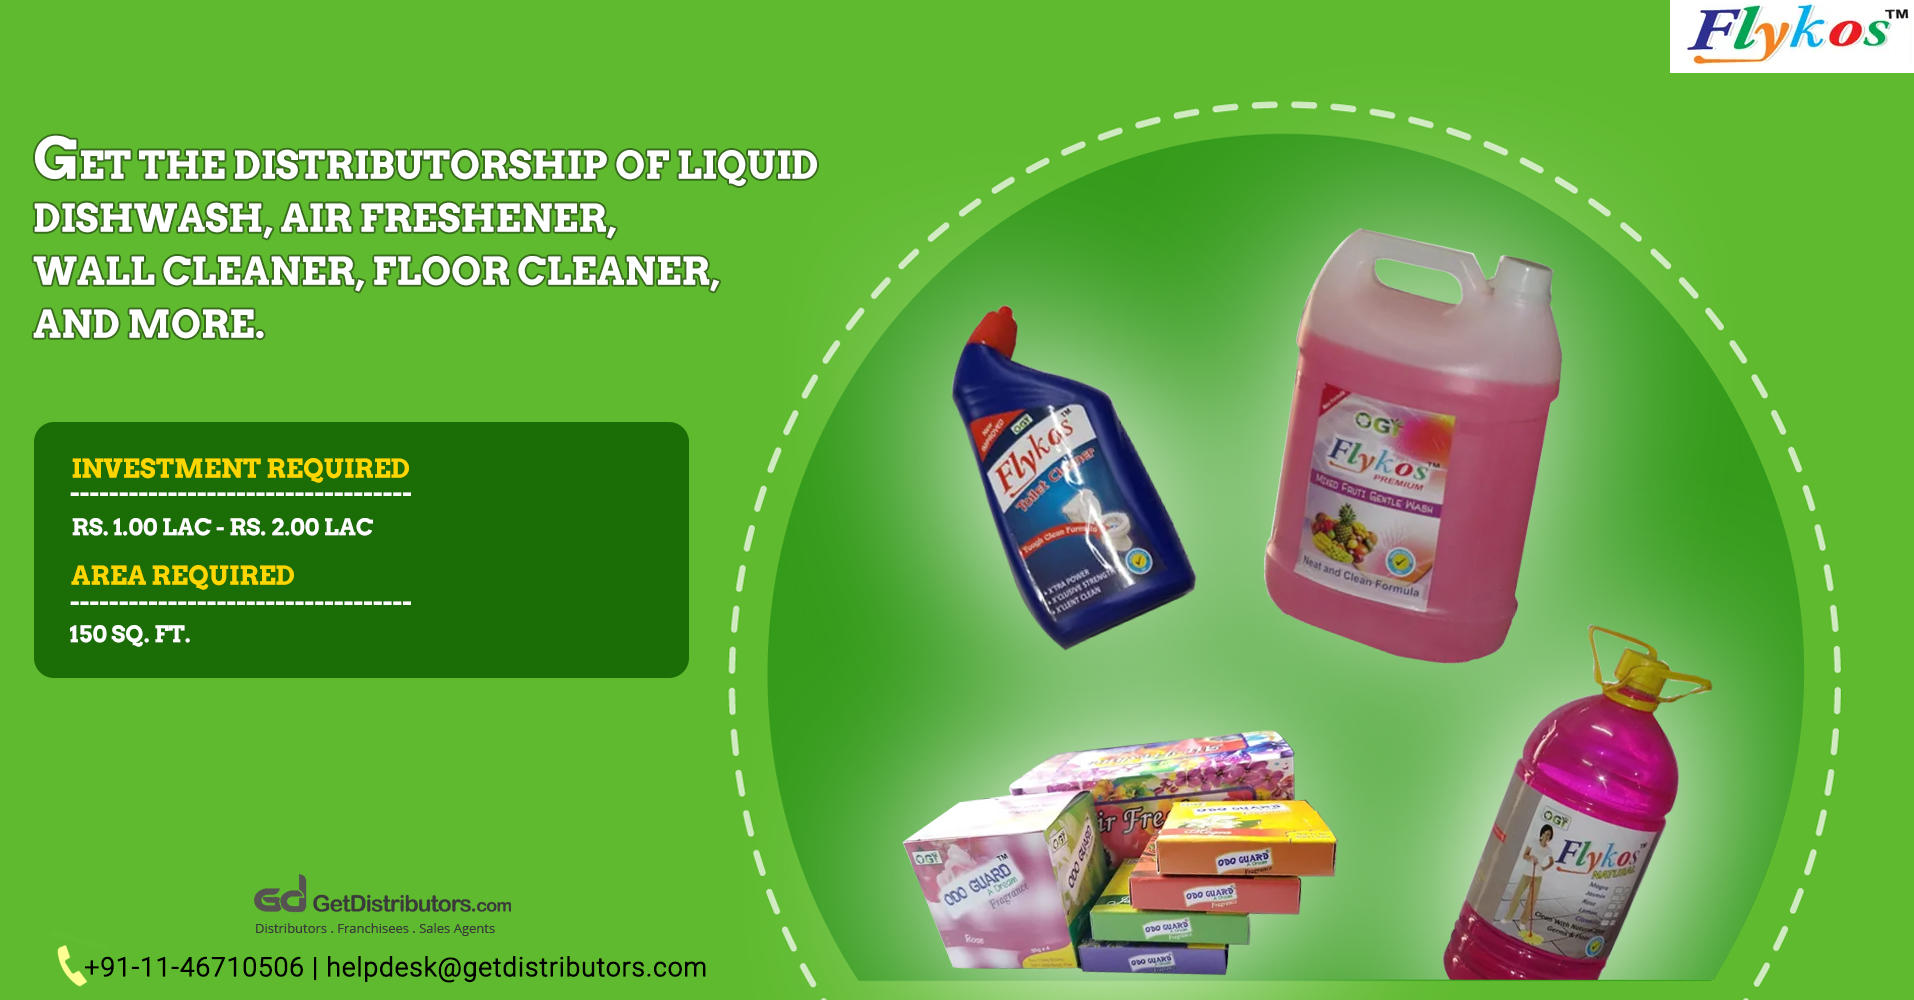 Experience A Healthier And Cleaner Home With Our Cleaning Products